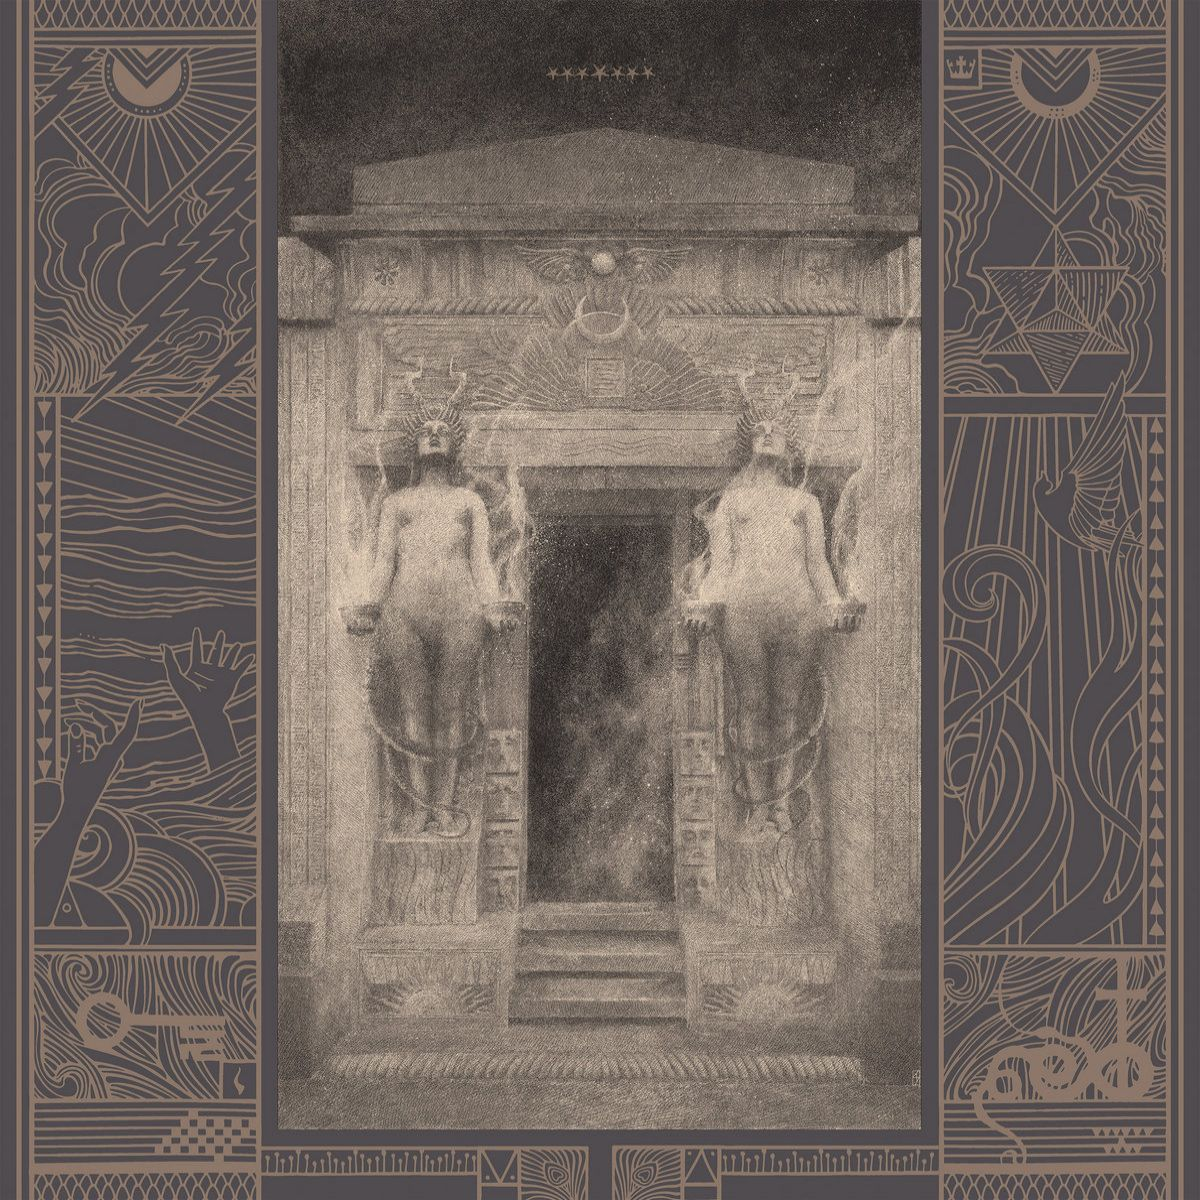 Review for Ash Borer - The Irrepassable Gate